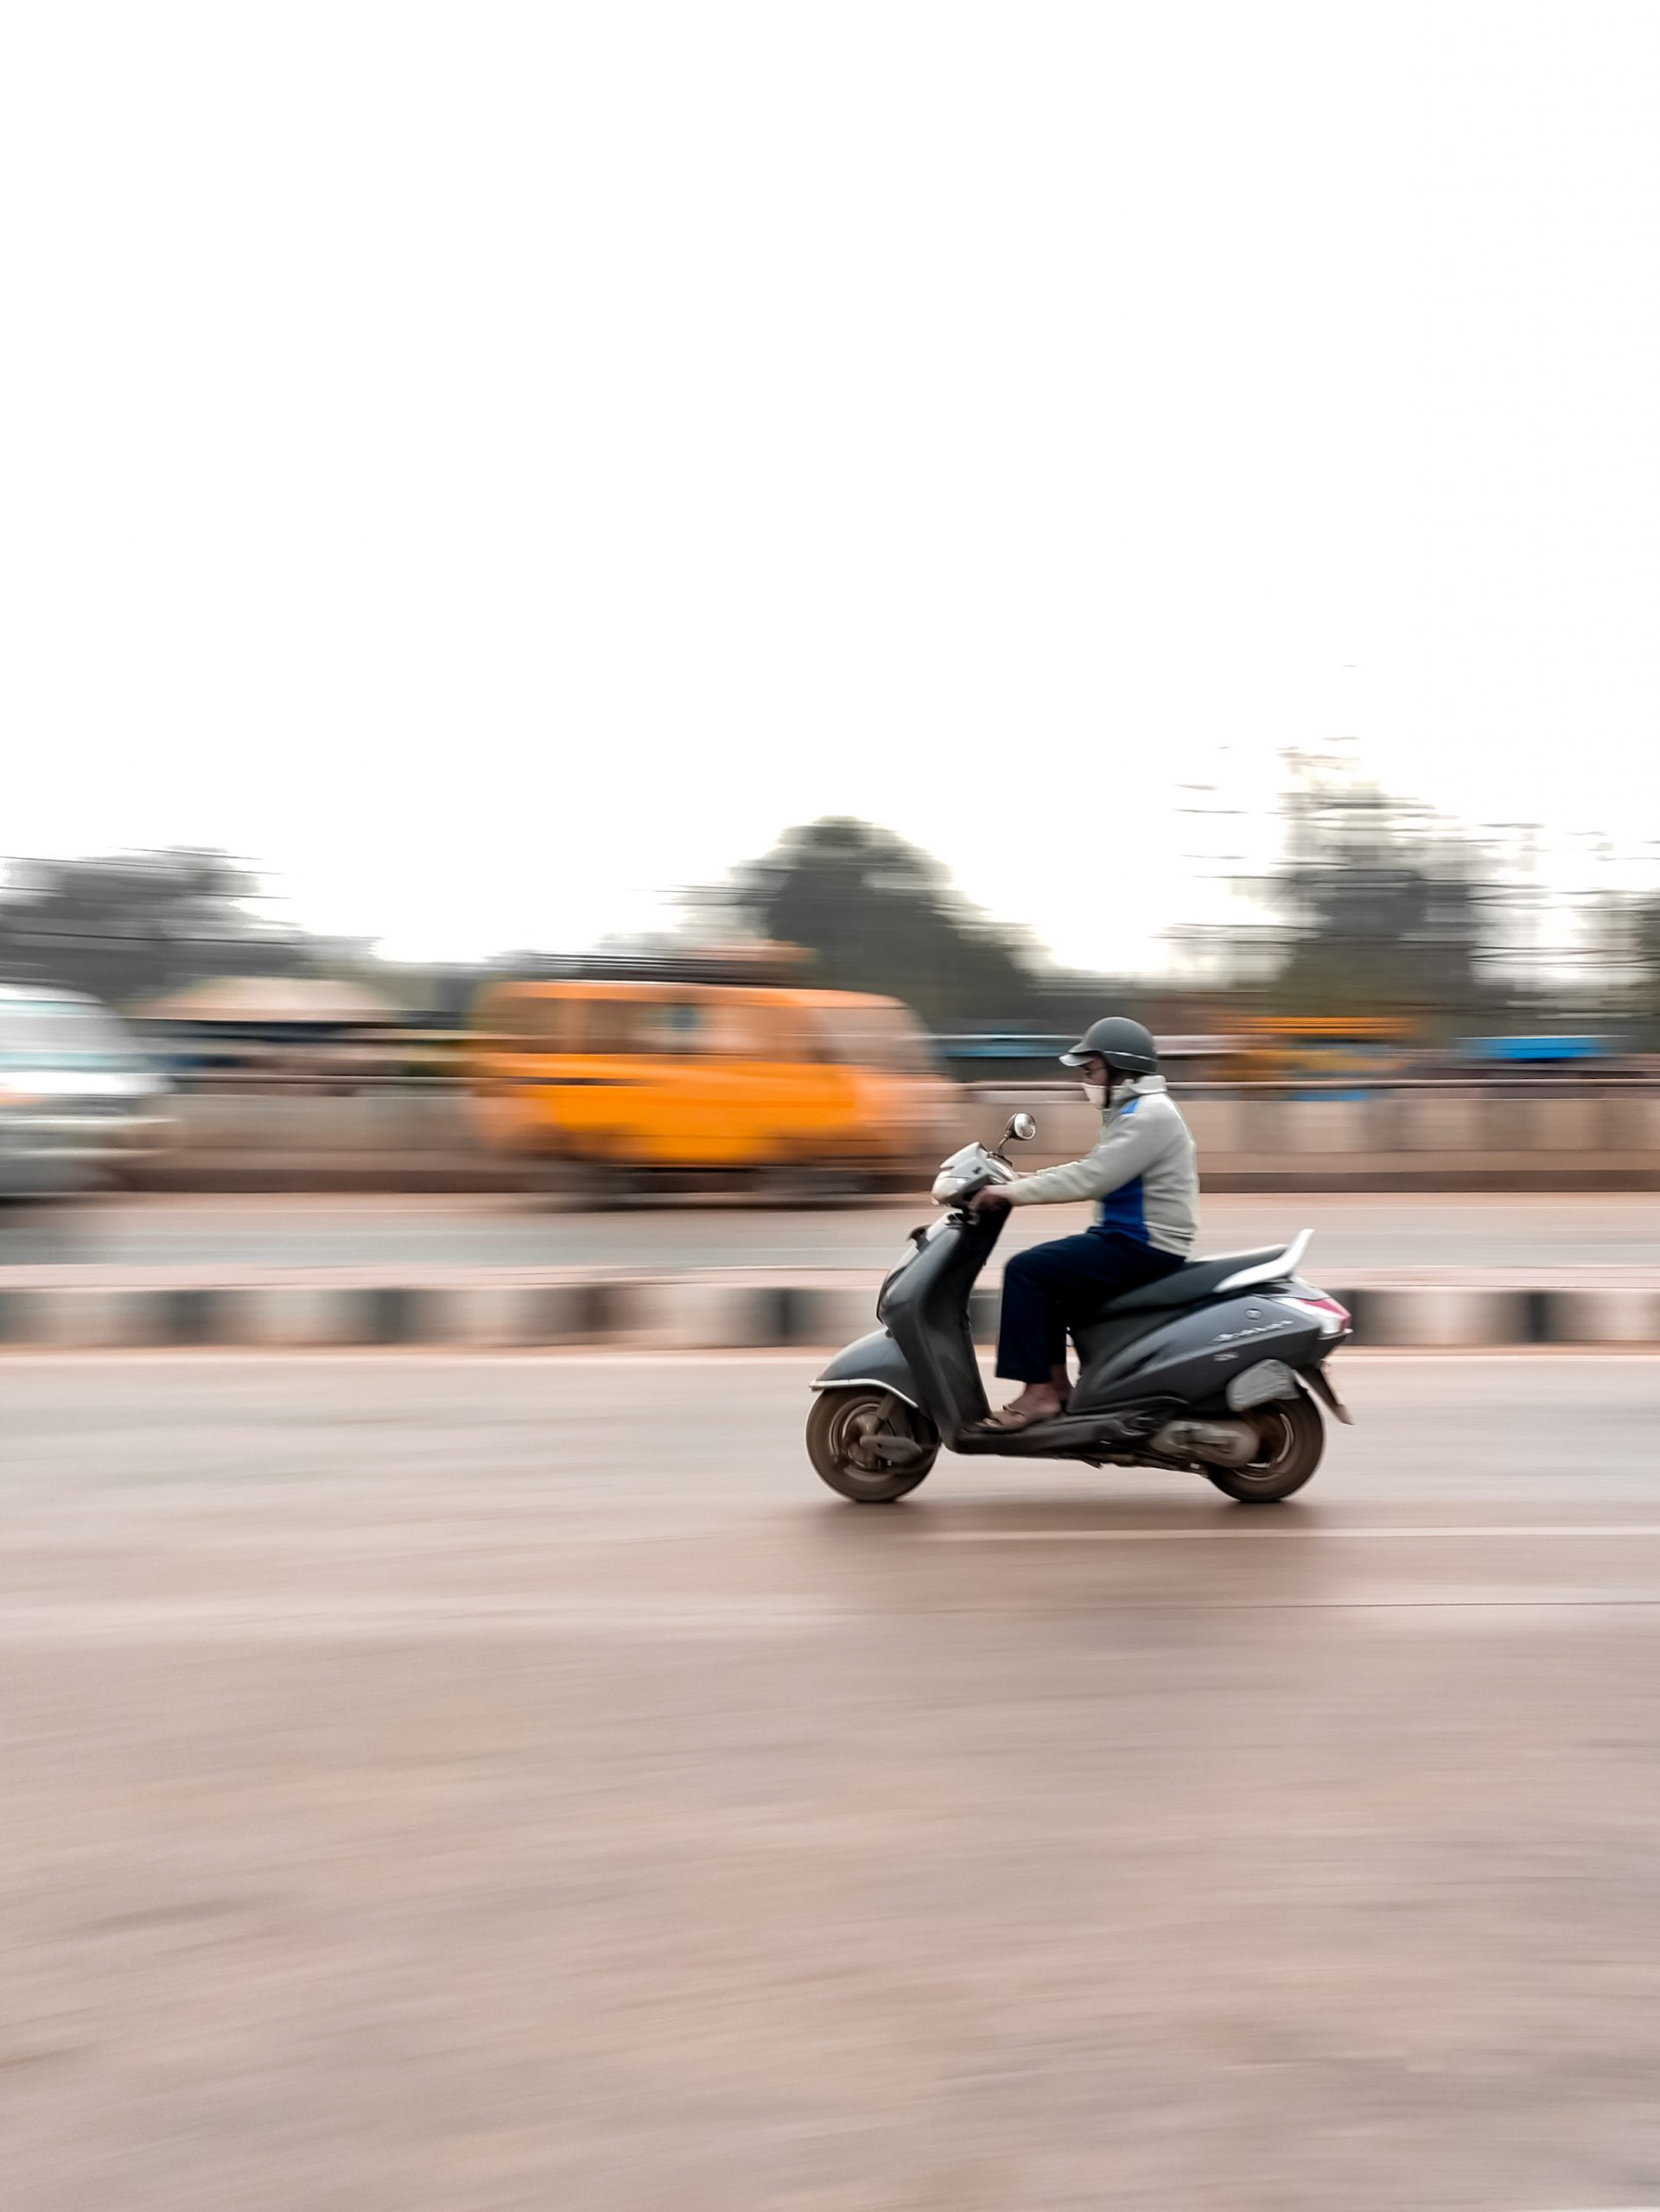 A scooter in motion